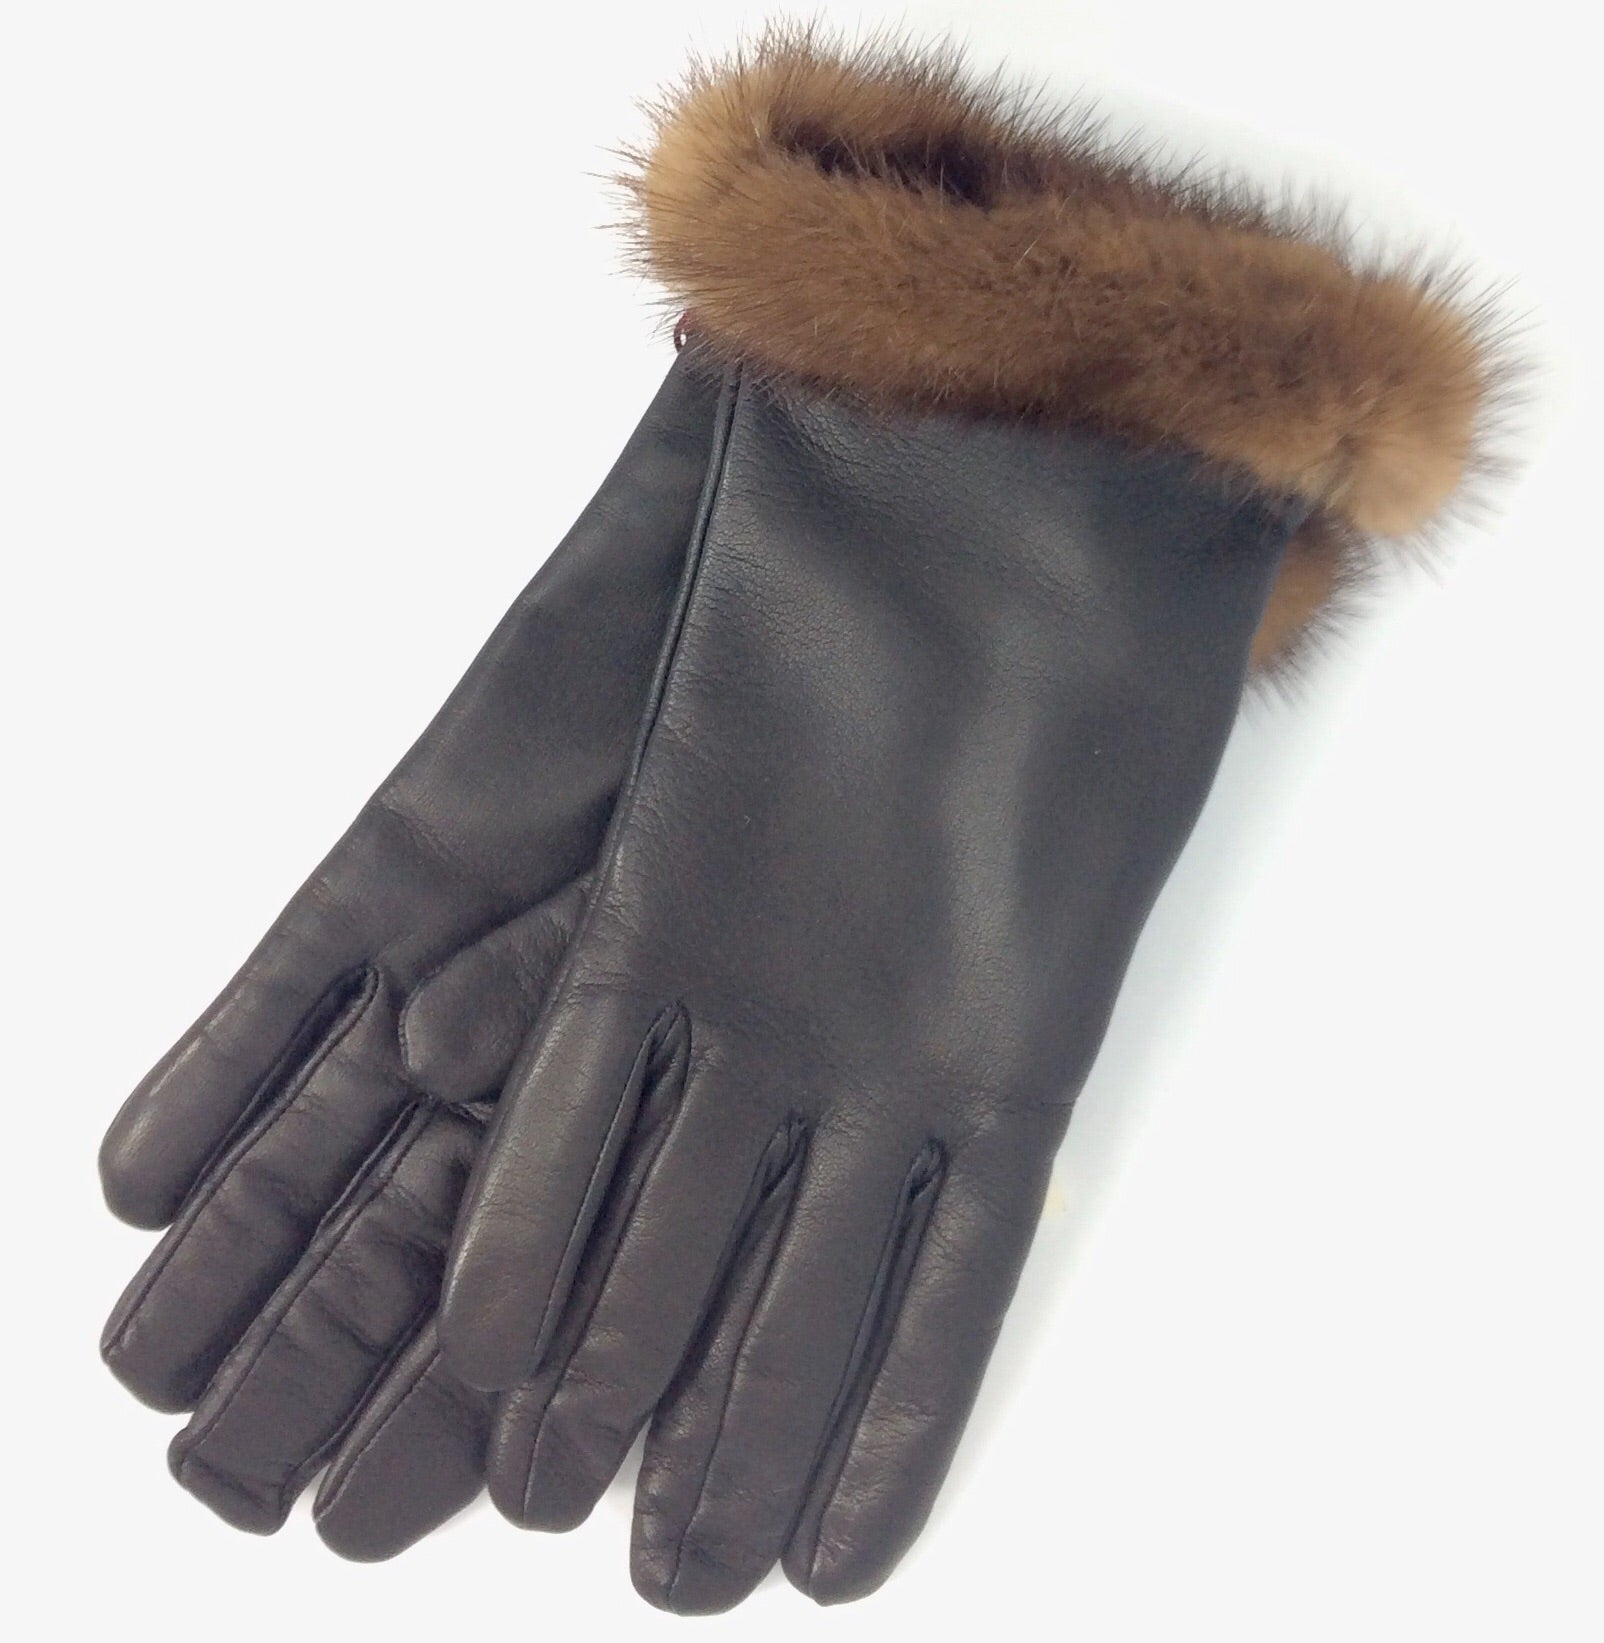 Black Italian gloves with brown fur cuff 100% wool lined